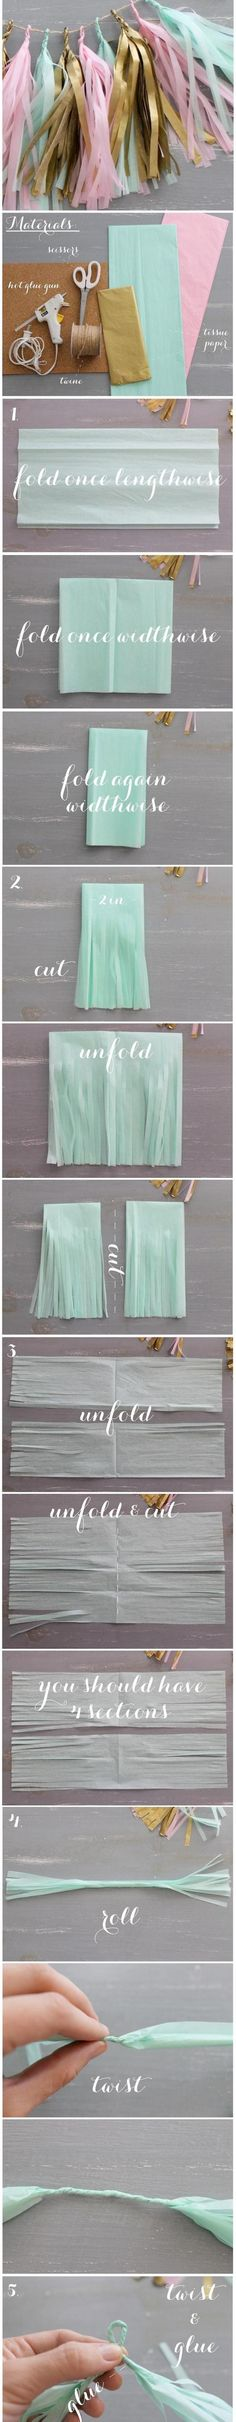 Top 10 #DIY #Party Crafts